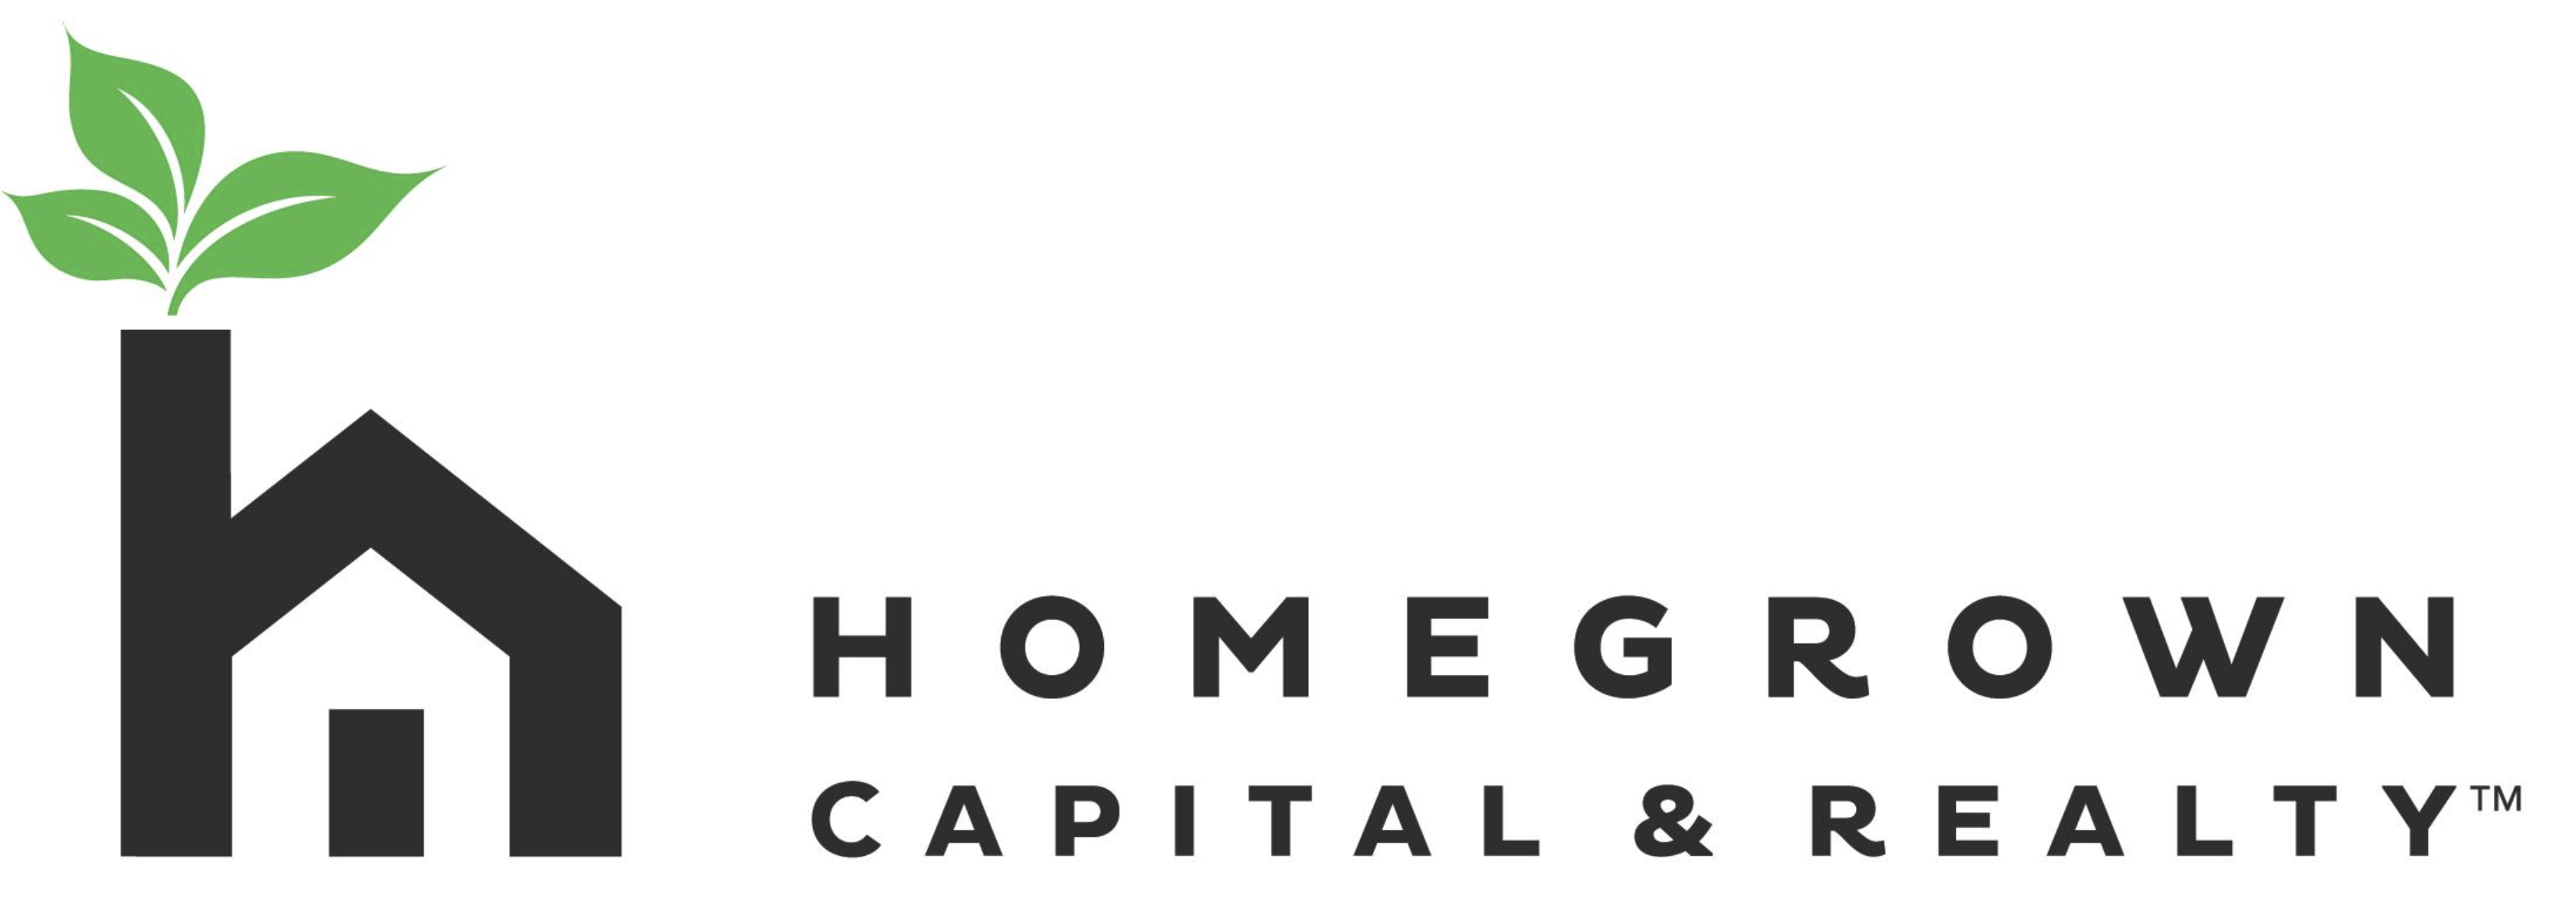 Homegrown Capital & Realty